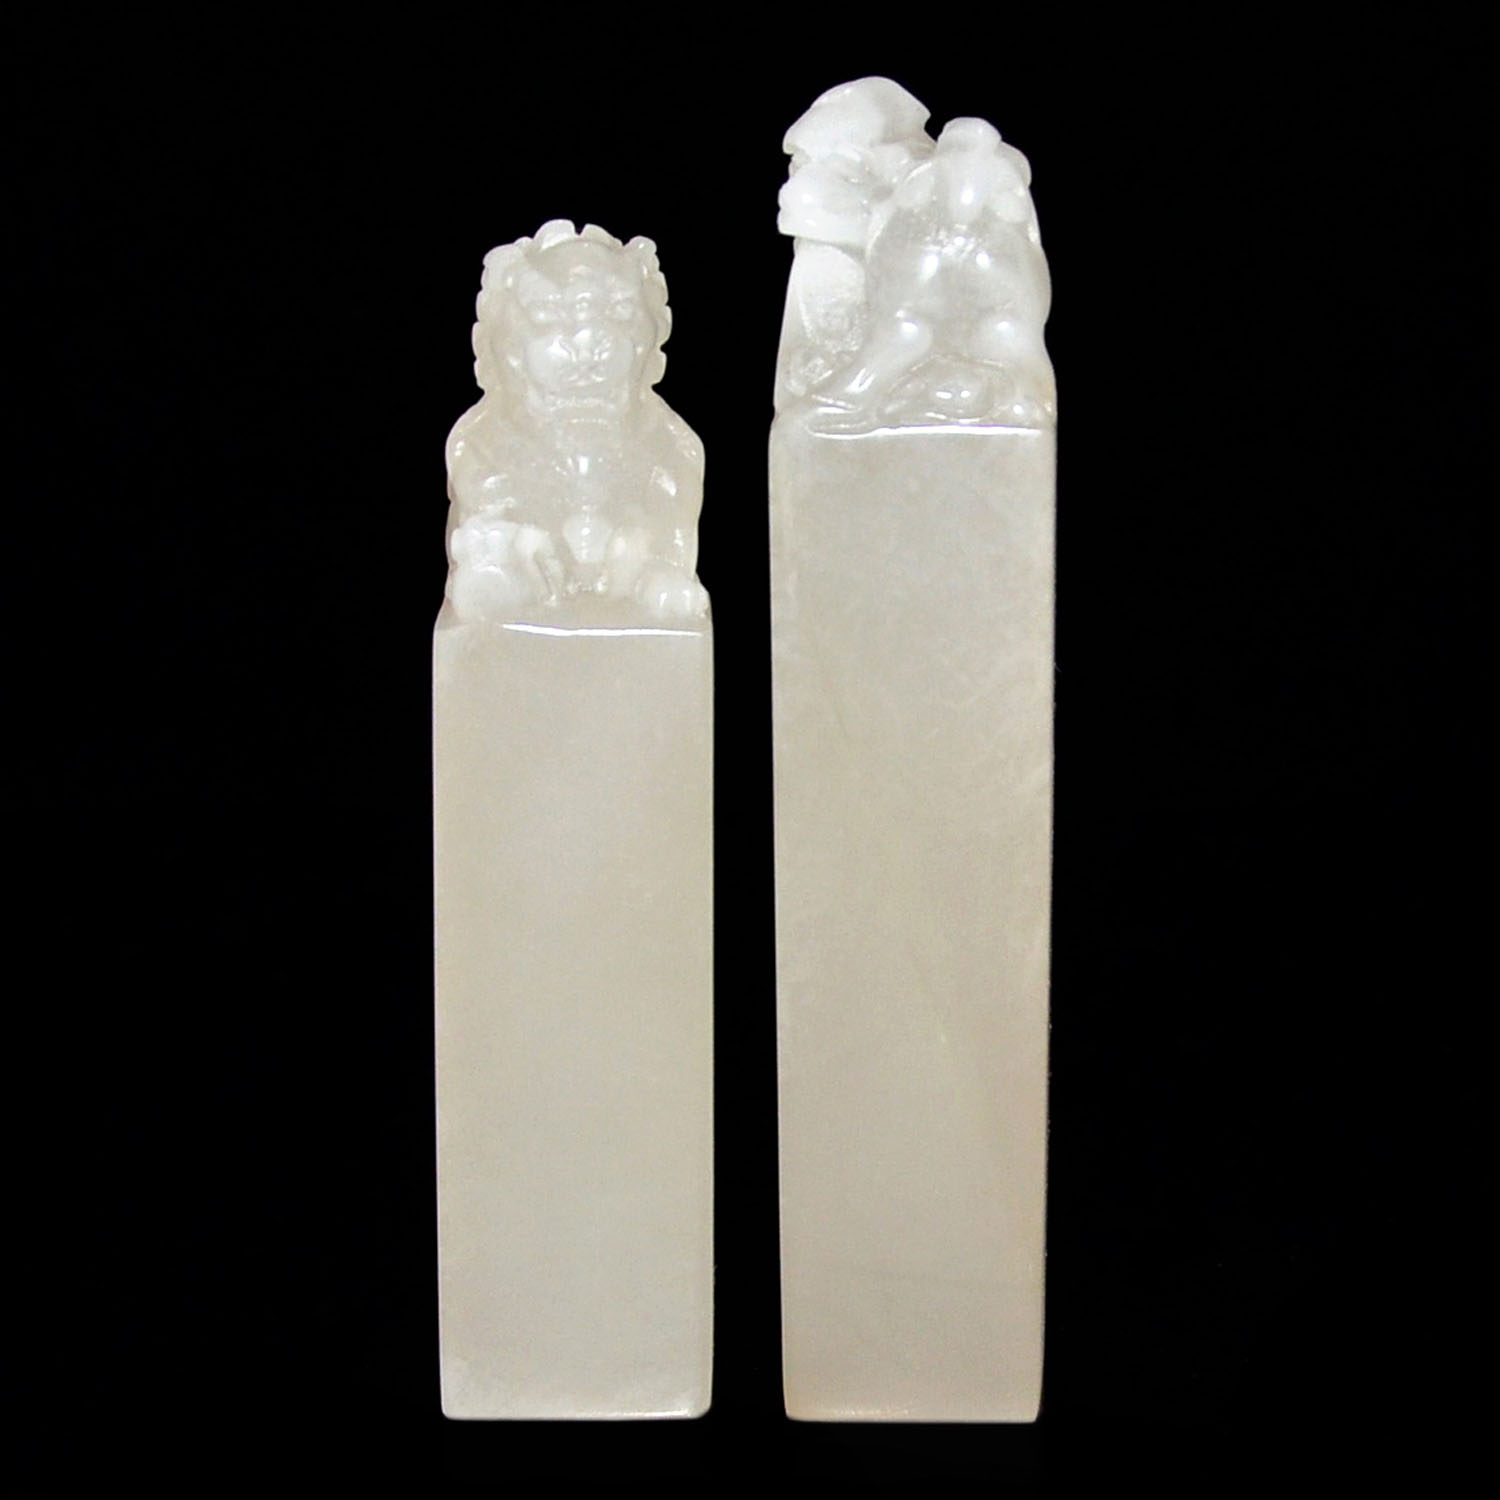 Lot 55 - 芙蓉石荔枝凍獅鈕印料兩件 Two Translucent Furong Stone Seals Carved with Lion Knob  Height: 5 in (12.7 cm), 5⅝ in